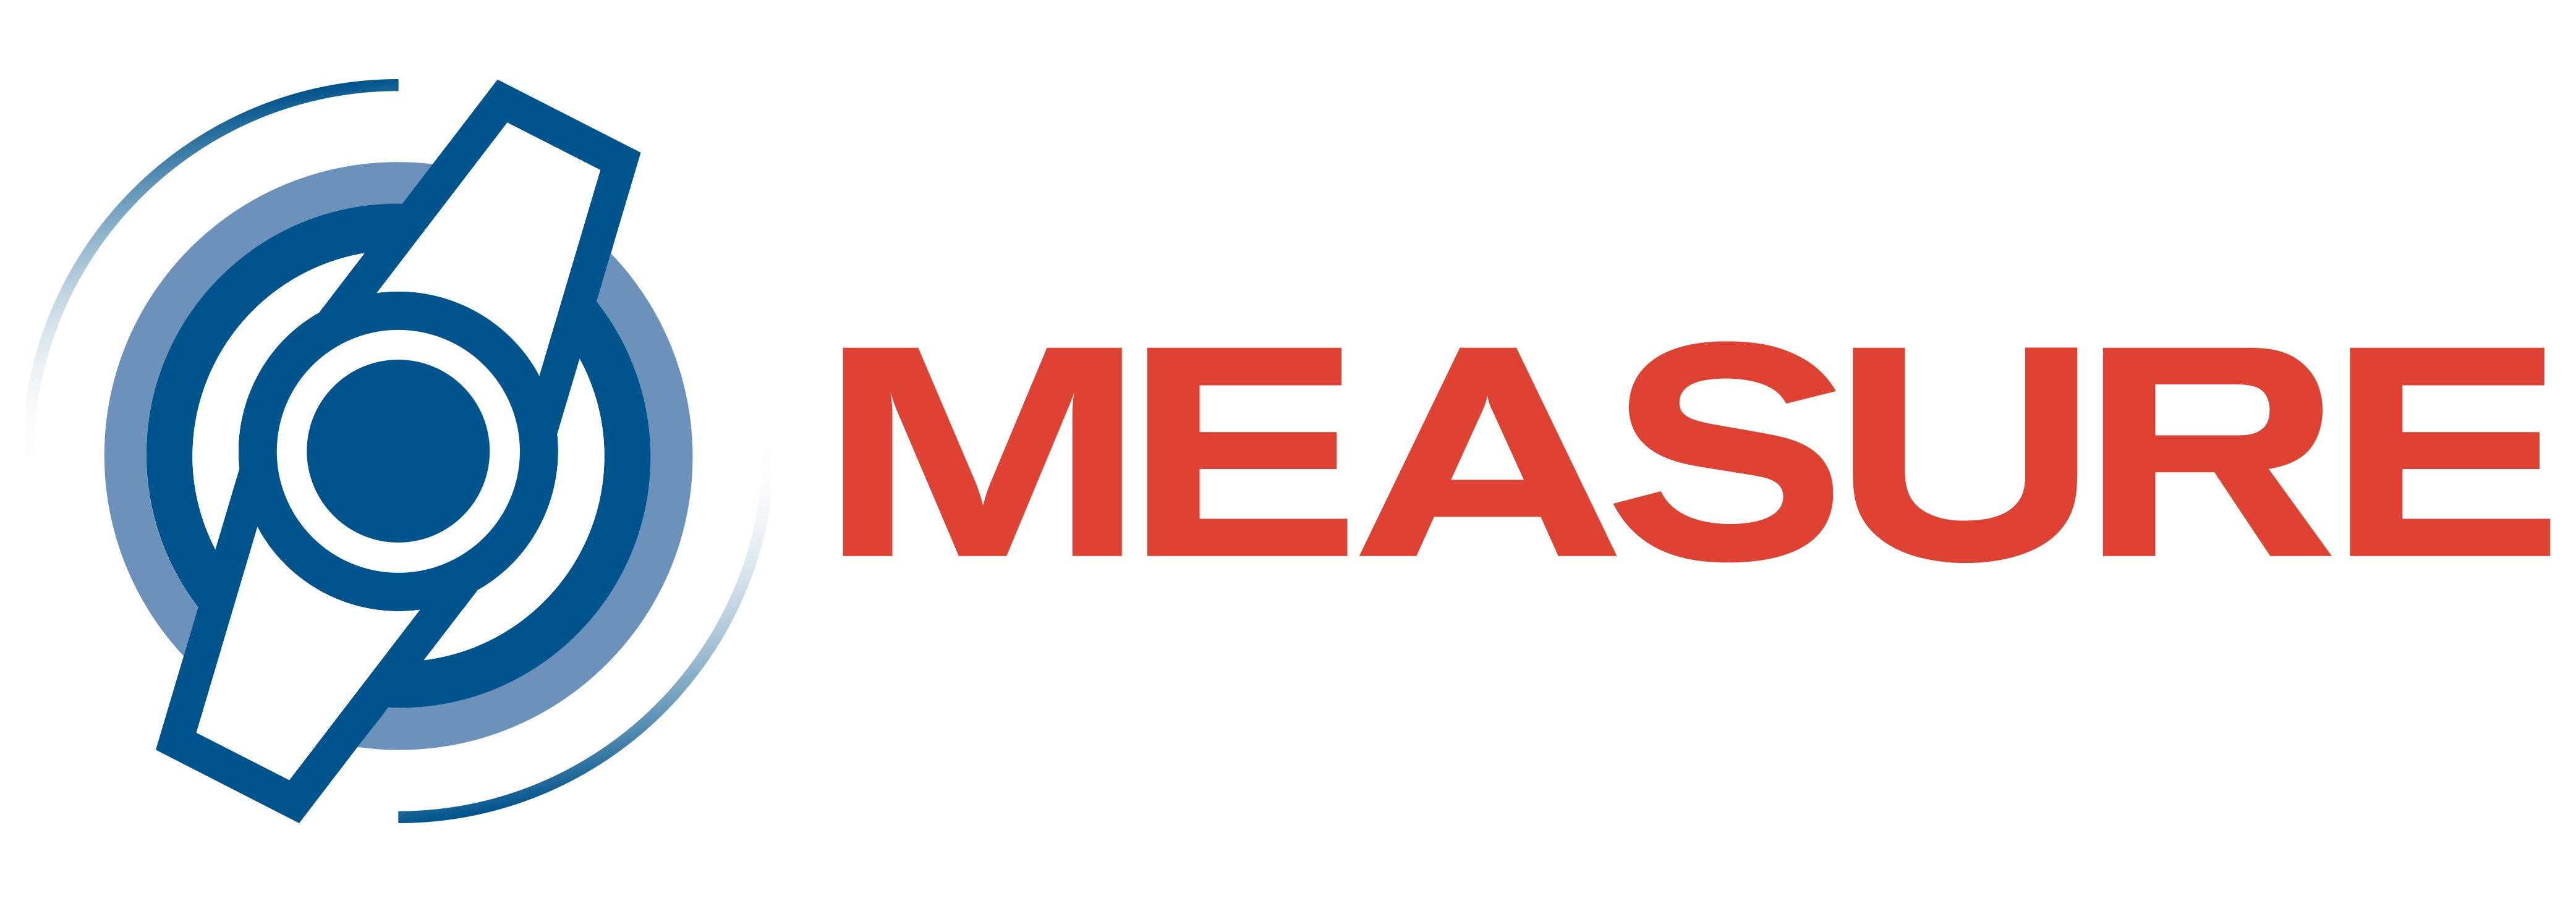 Drone Solutions Provider Measure Closes $15m Series B Funding Round